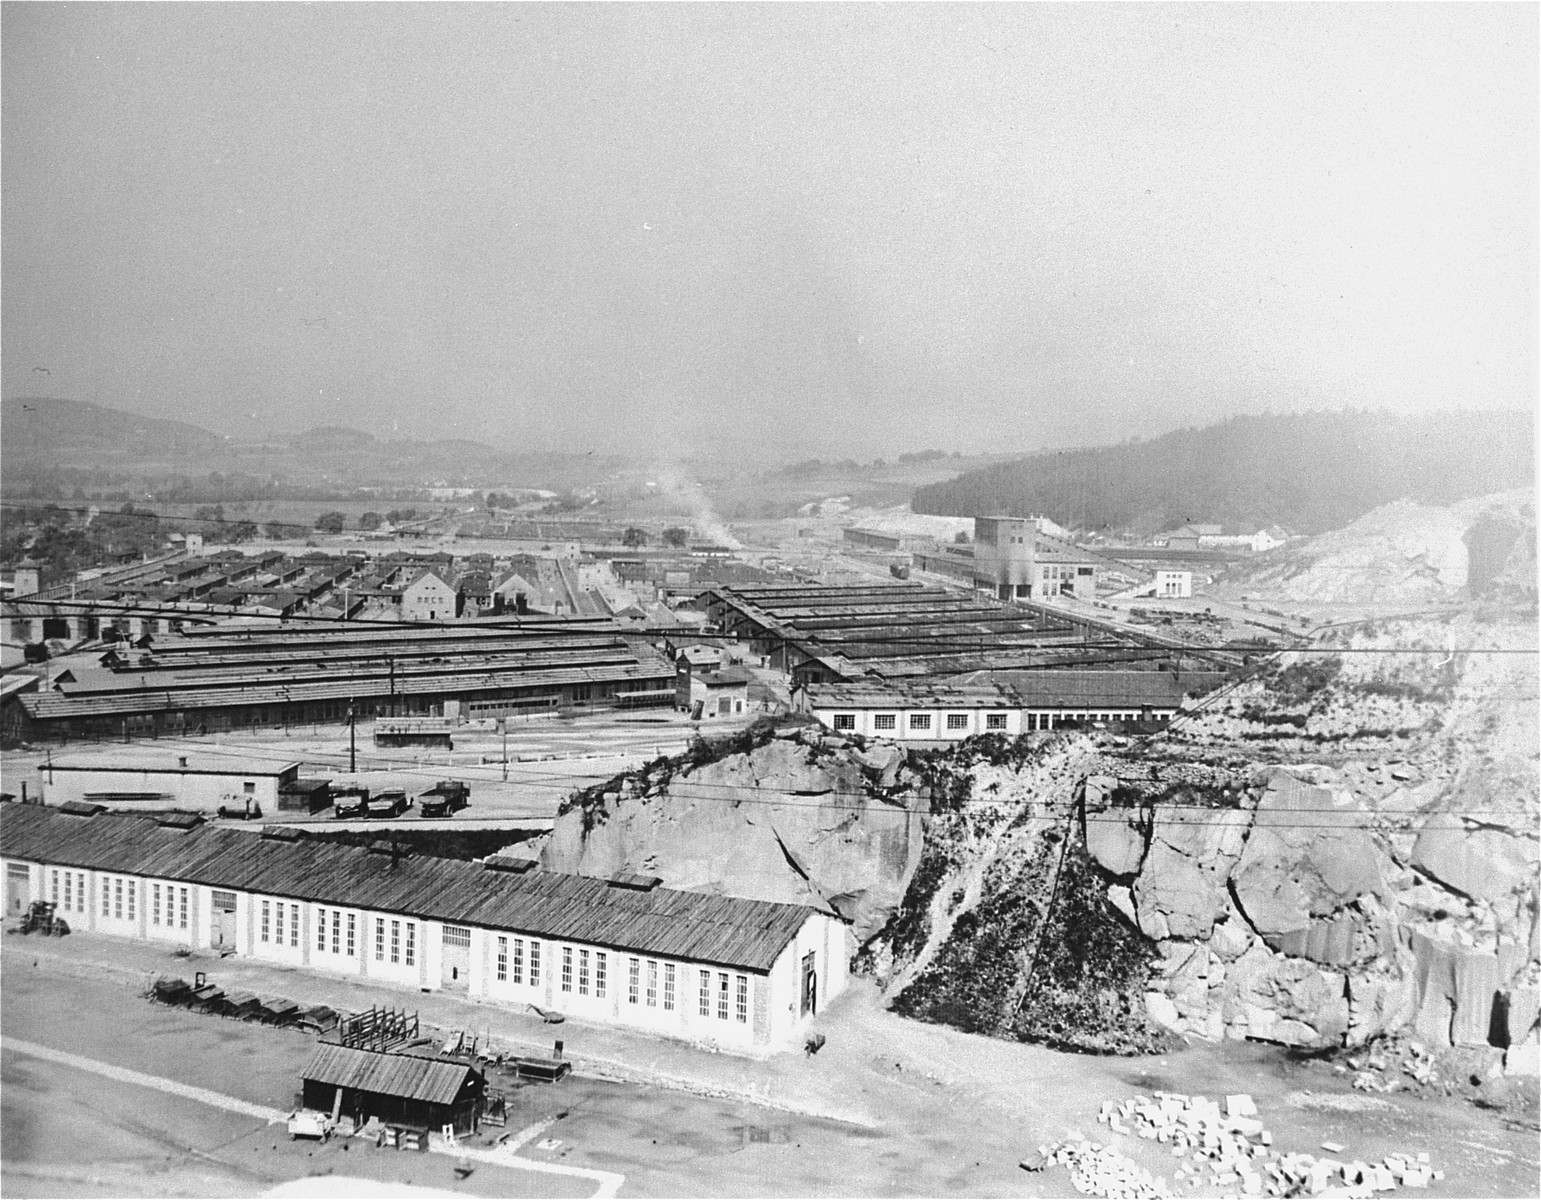 View of the Gusen concentration camp after the liberation.